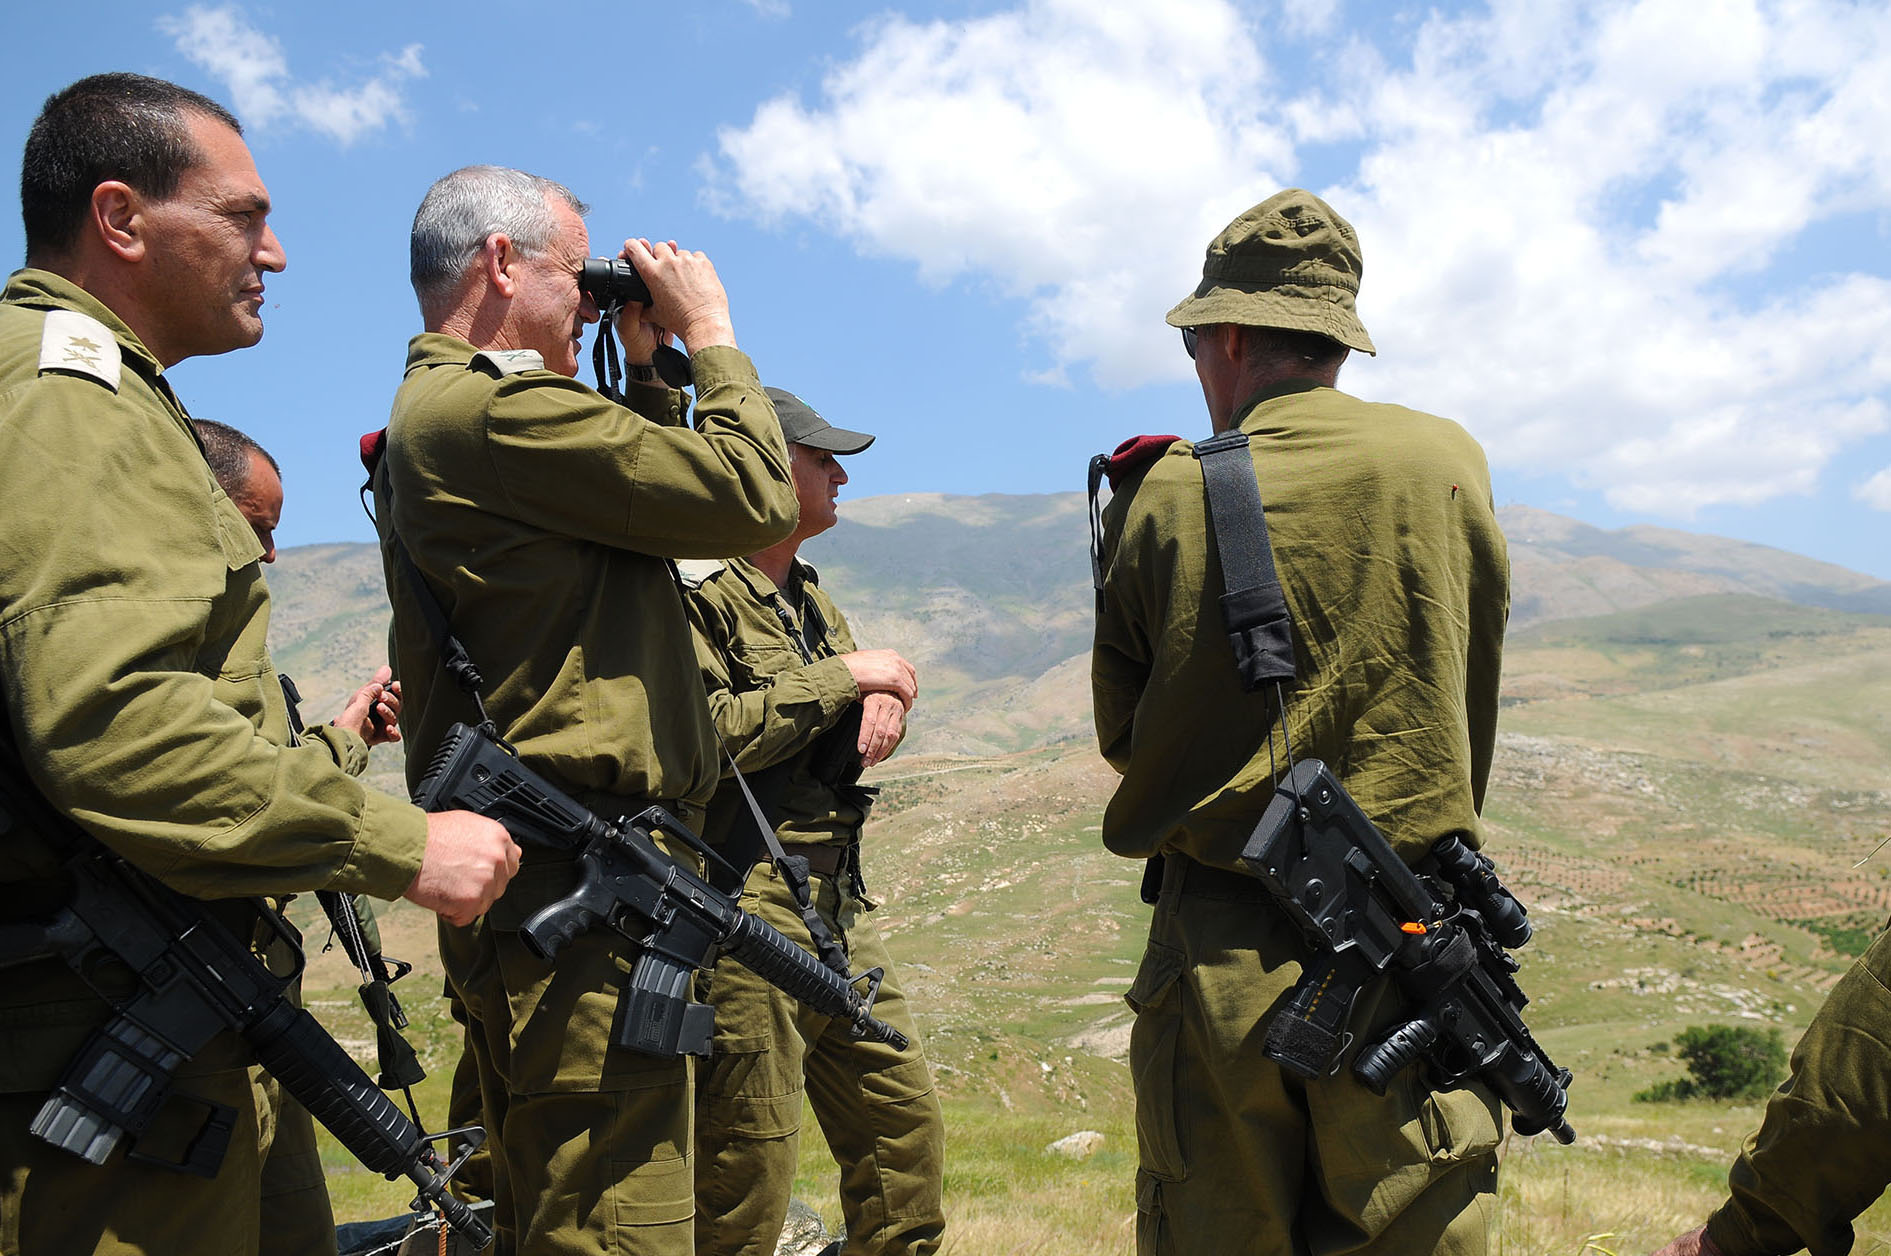 IDF Chief of Staff Benny Gantz (with binoculars) tours the Israeli border with Syria on May 21, 2013.